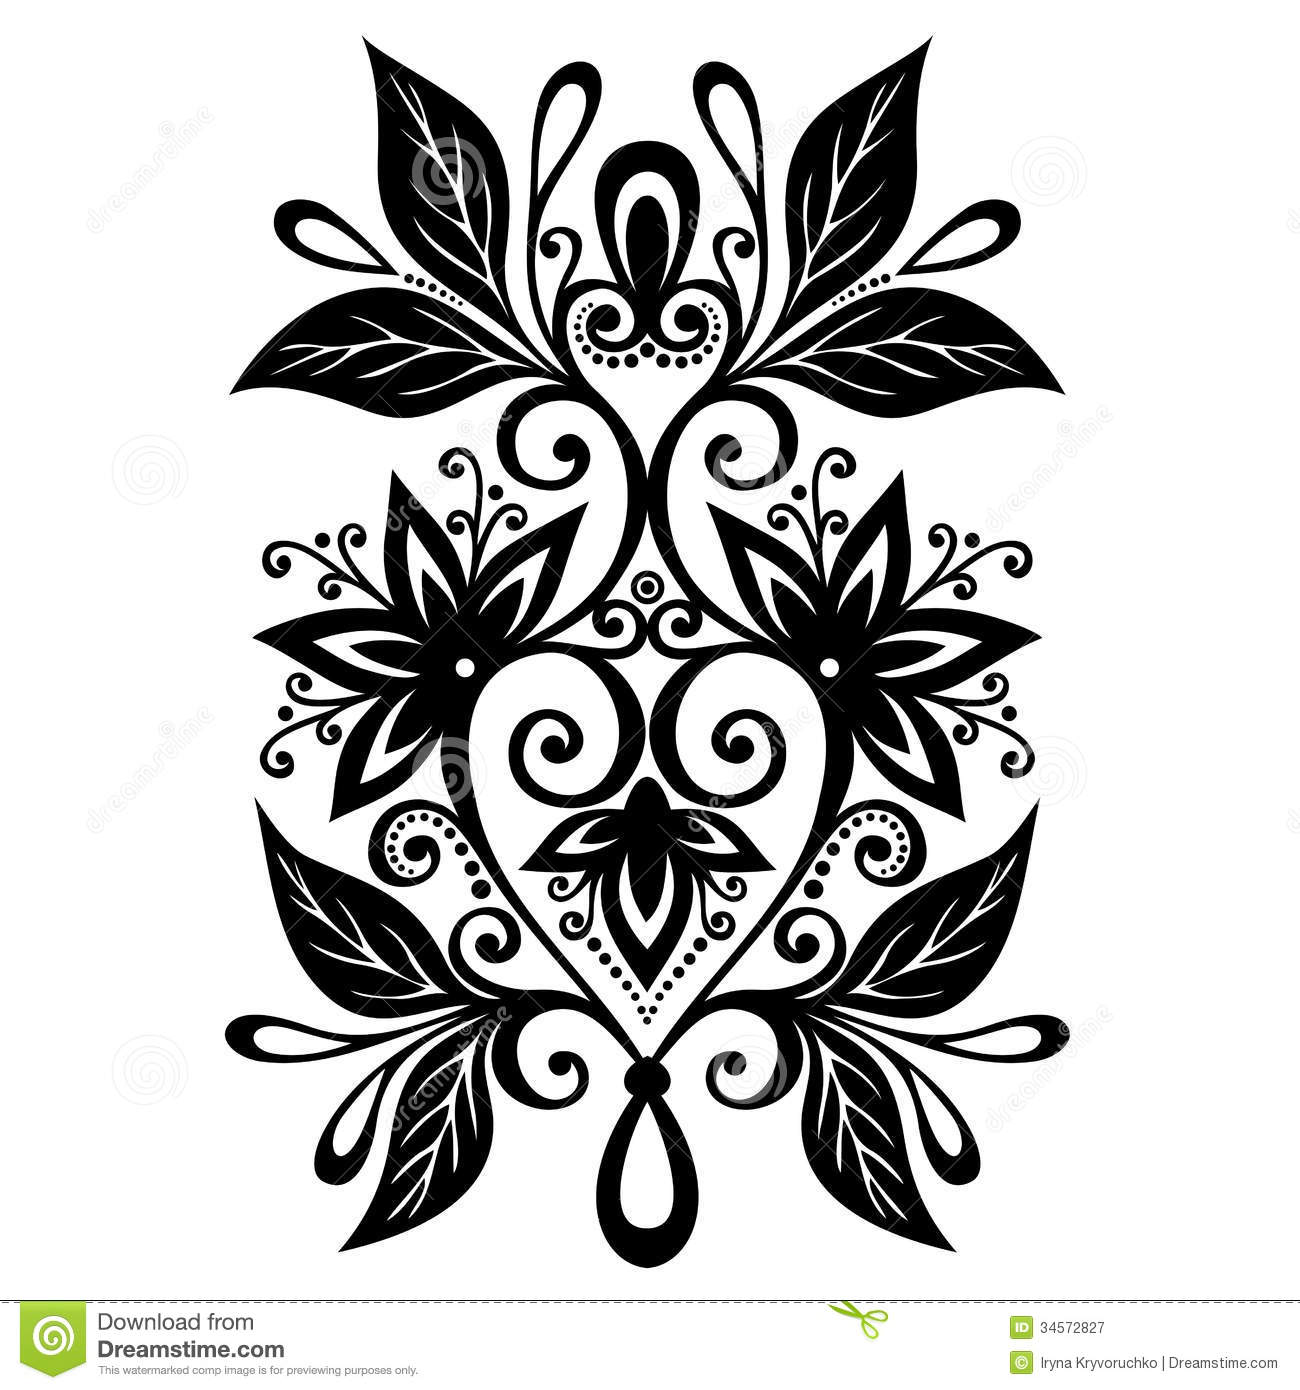 Six Black Flower Design Stock Images: Decorative Flower With Leaves Royalty Free Stock